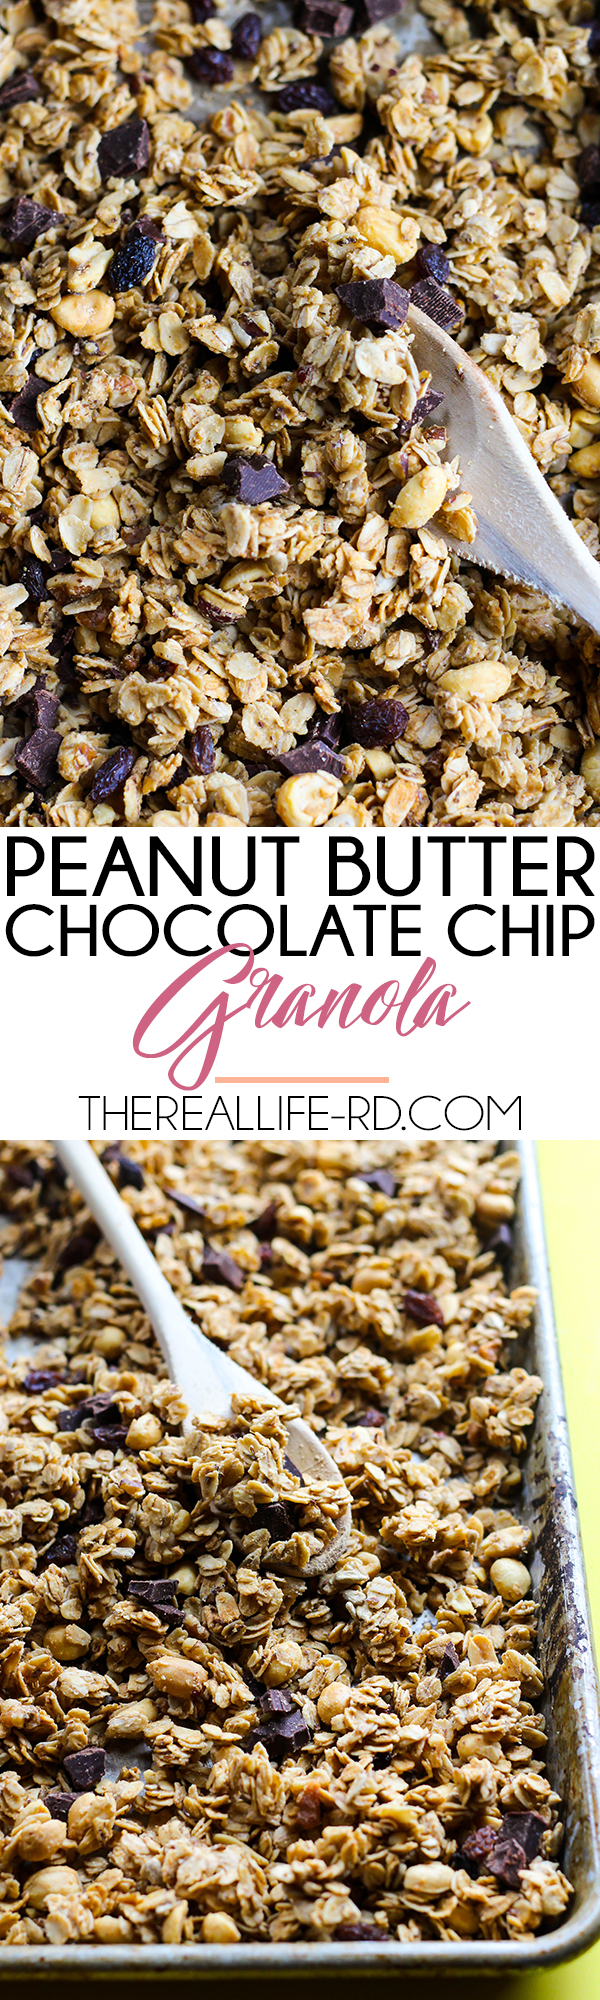 Easy & delicious peanut butter chocolate chip granola! | The Real Life RD